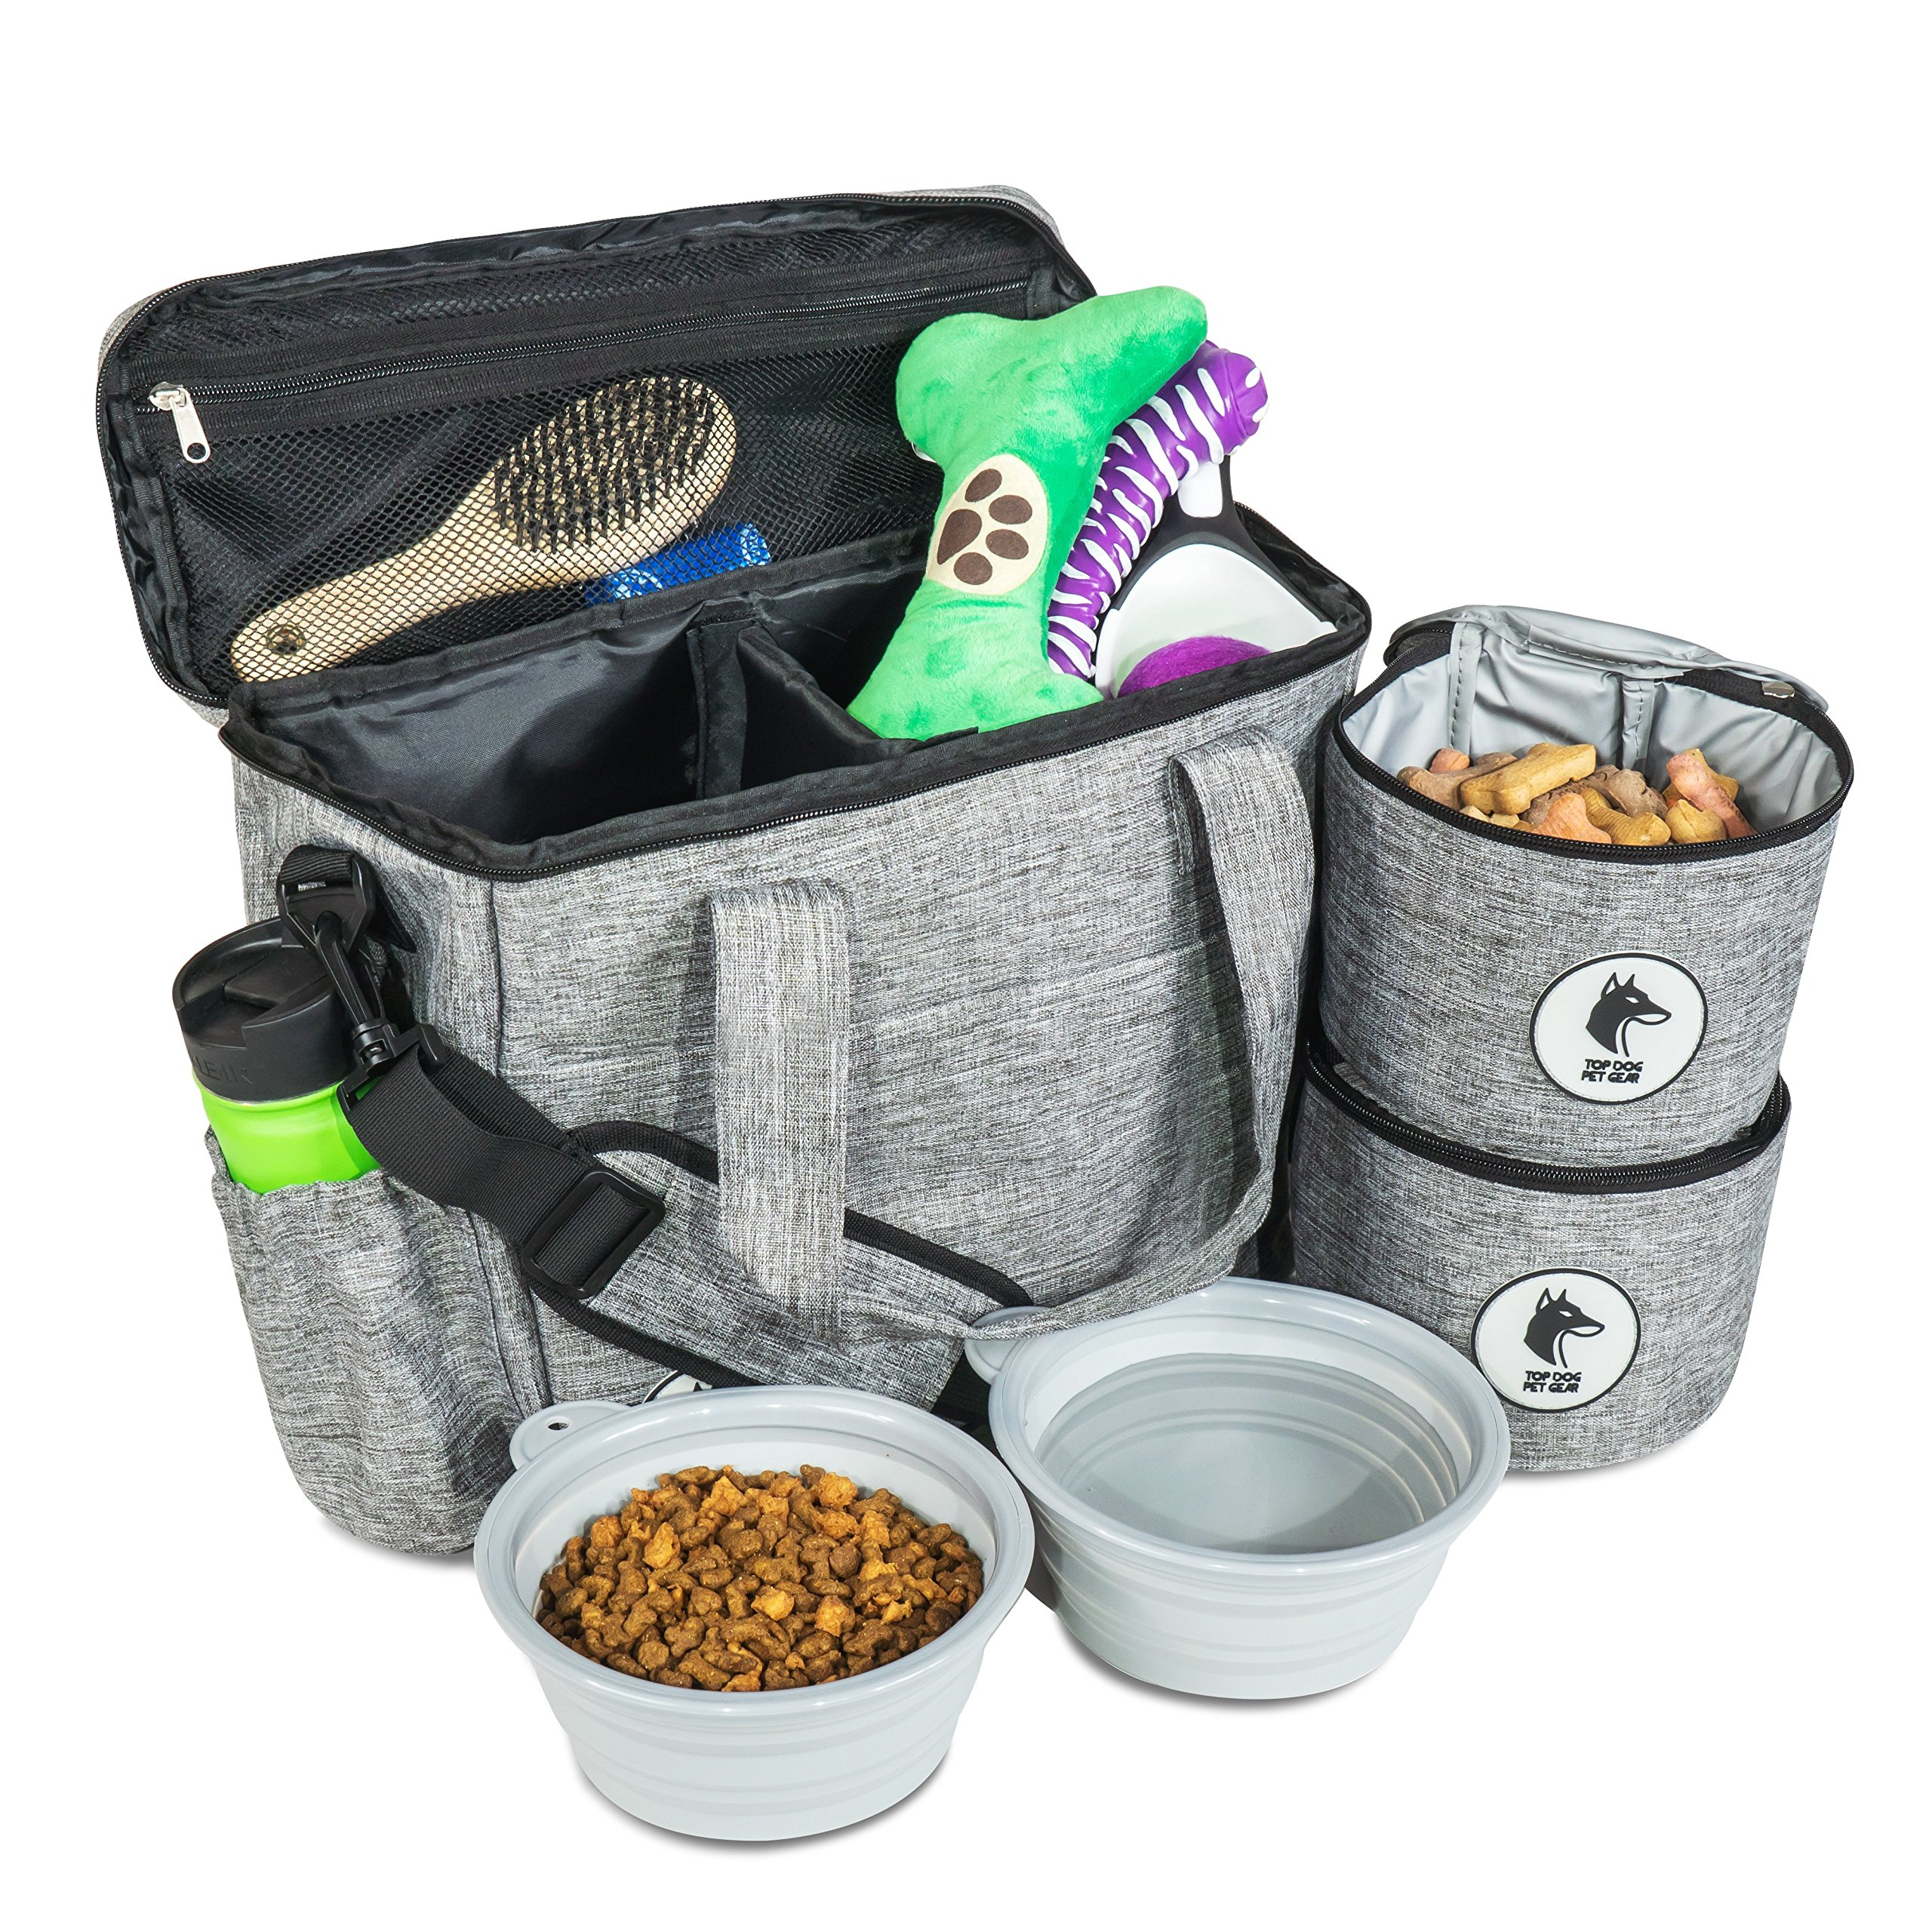 Top Dog Travel Bag Accessories